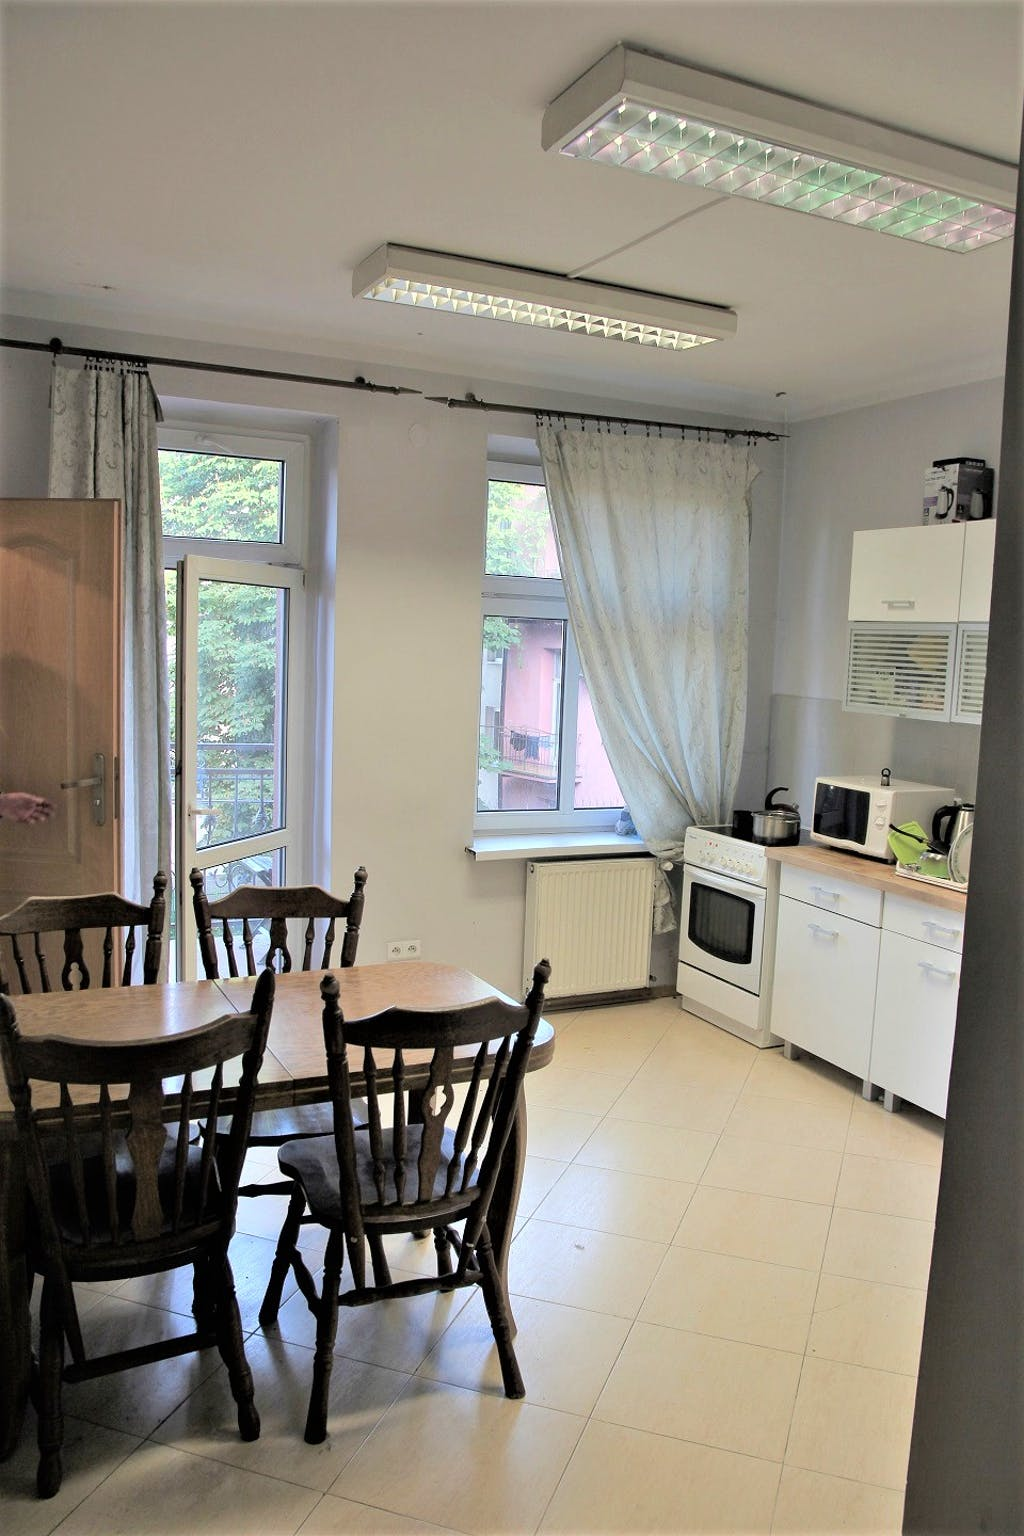 Holiday apartment Cracow, Ulica Józefa Friedleina, Holiday apartment for rent